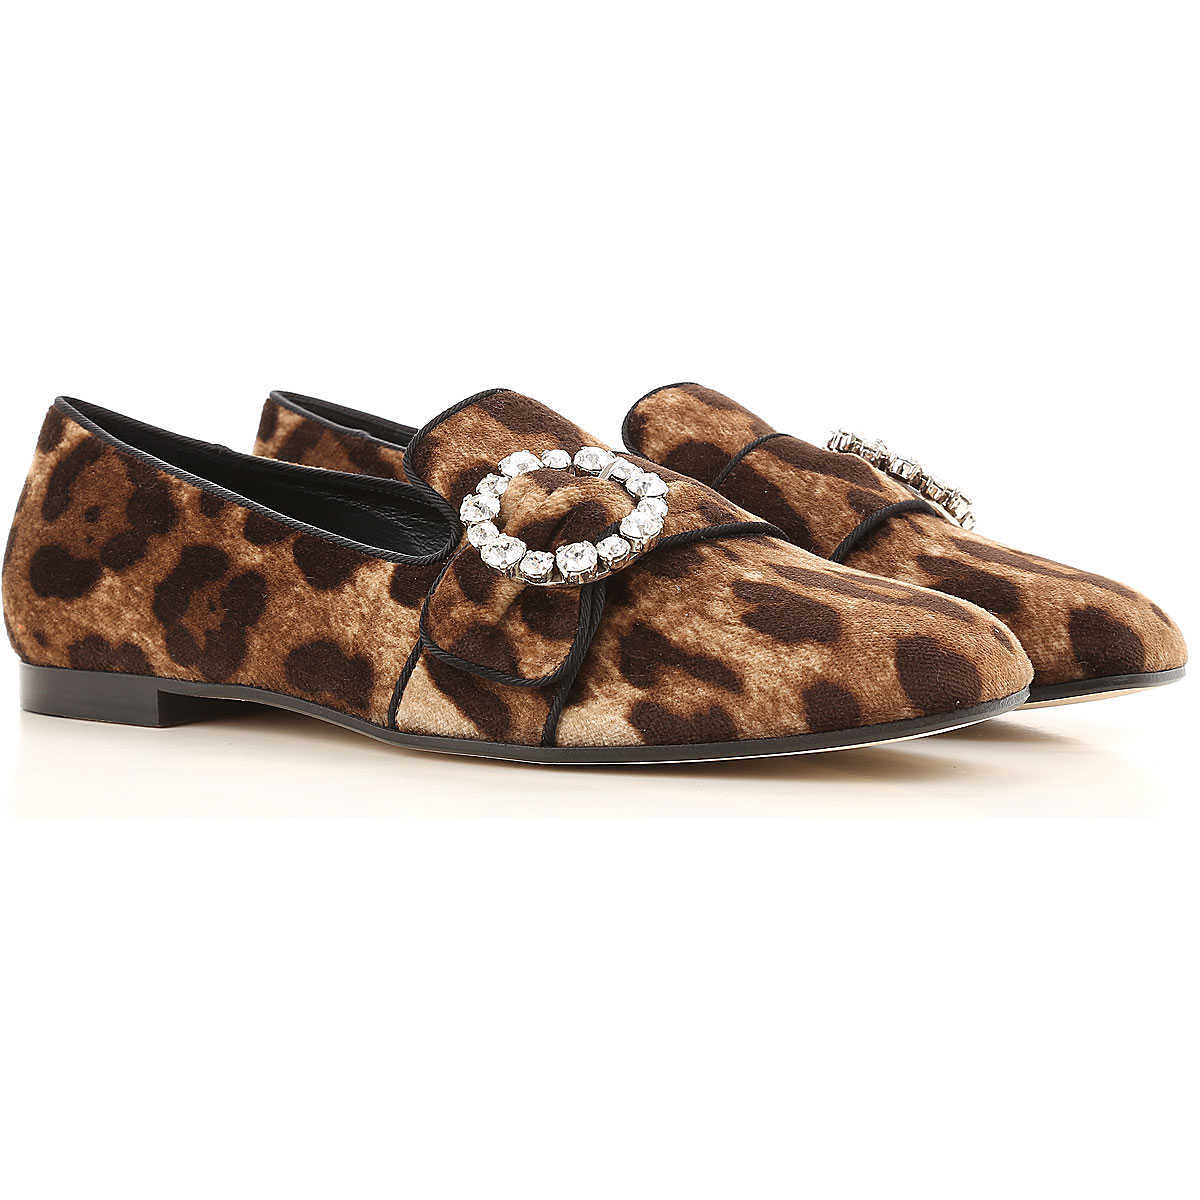 Dolce & Gabbana Ballet Flats Ballerina Shoes for Women On Sale in Outlet Leopard - GOOFASH